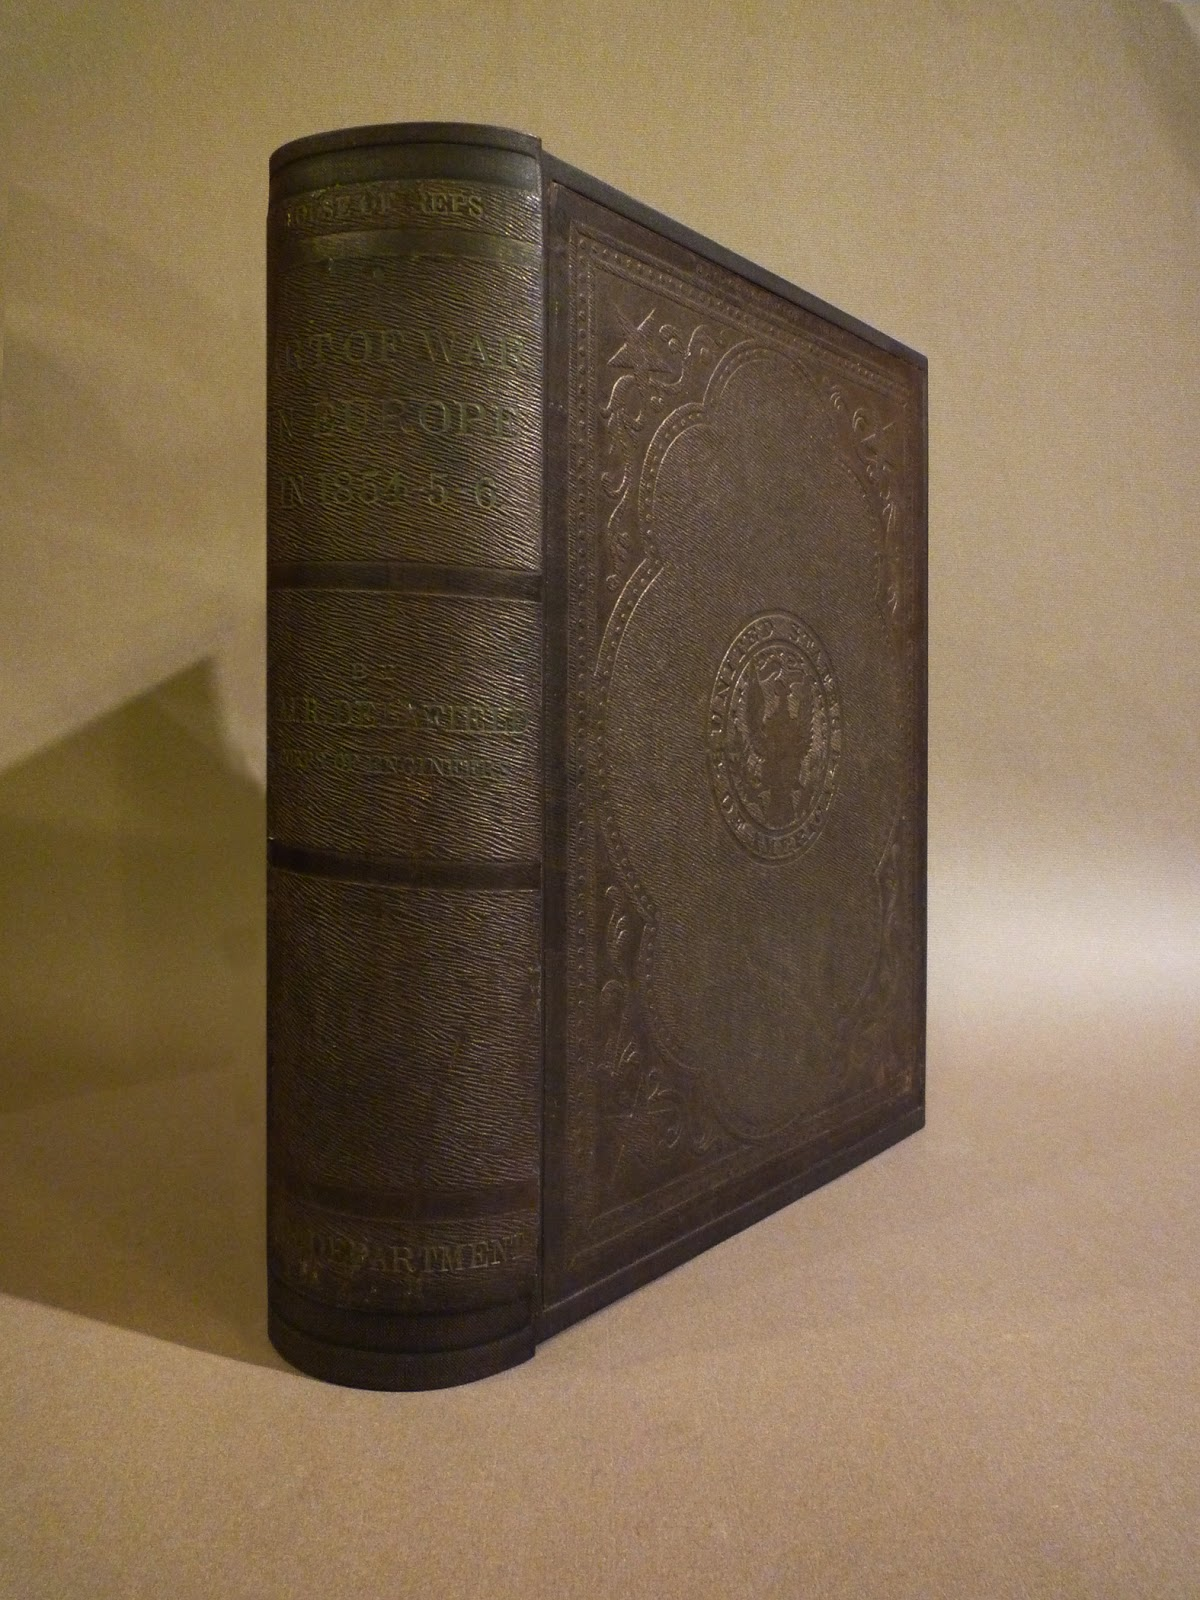 Report on the art of war in europe in 1854